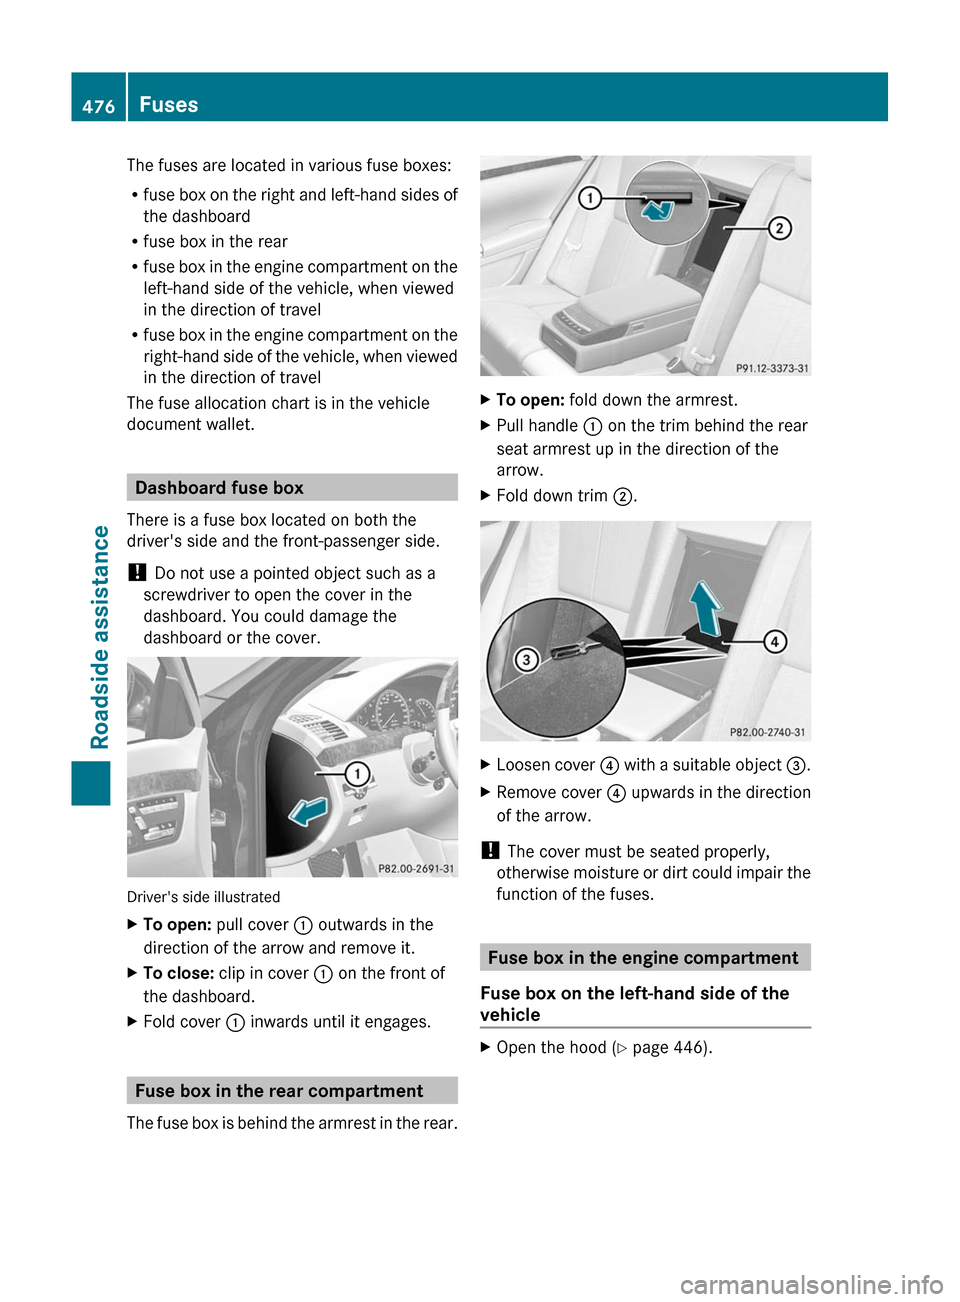 medium resolution of mercedes benz s class 2011 w221 owners manual page 478 the fuses are located in various fuse boxes